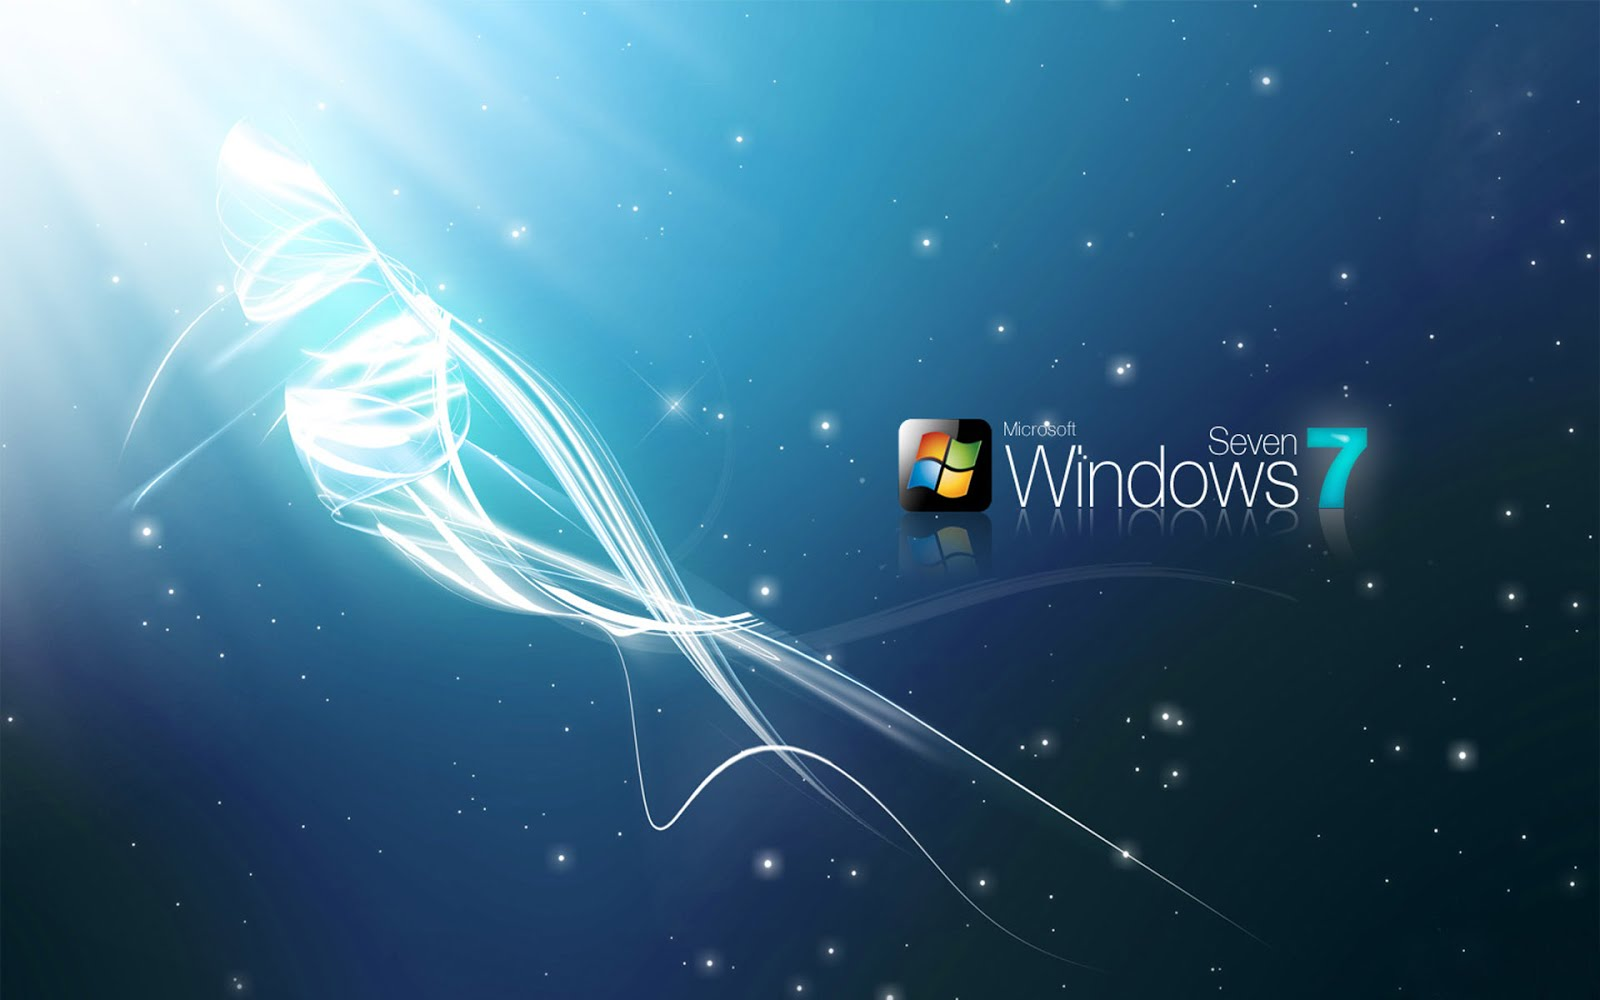 animated wallpaper for windows 7 animated wallpaper for windows 7